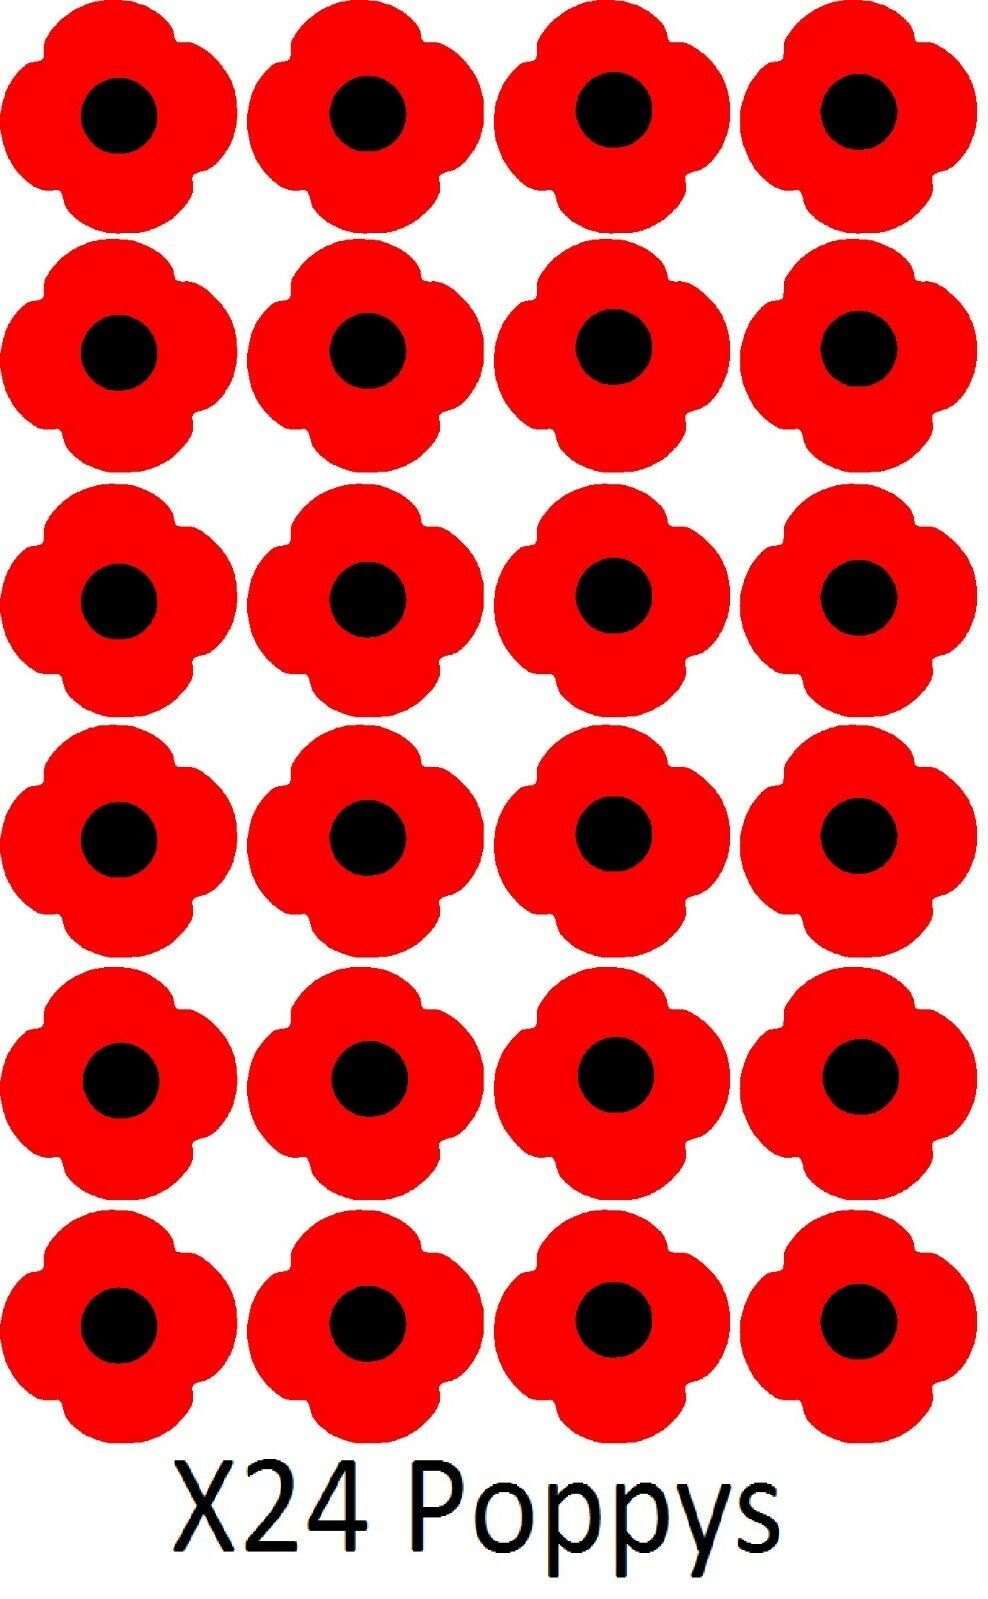 Home Decoration - x24 Poppy Remembrance vinyl sticker stickers craft diy Lest We Forget car home